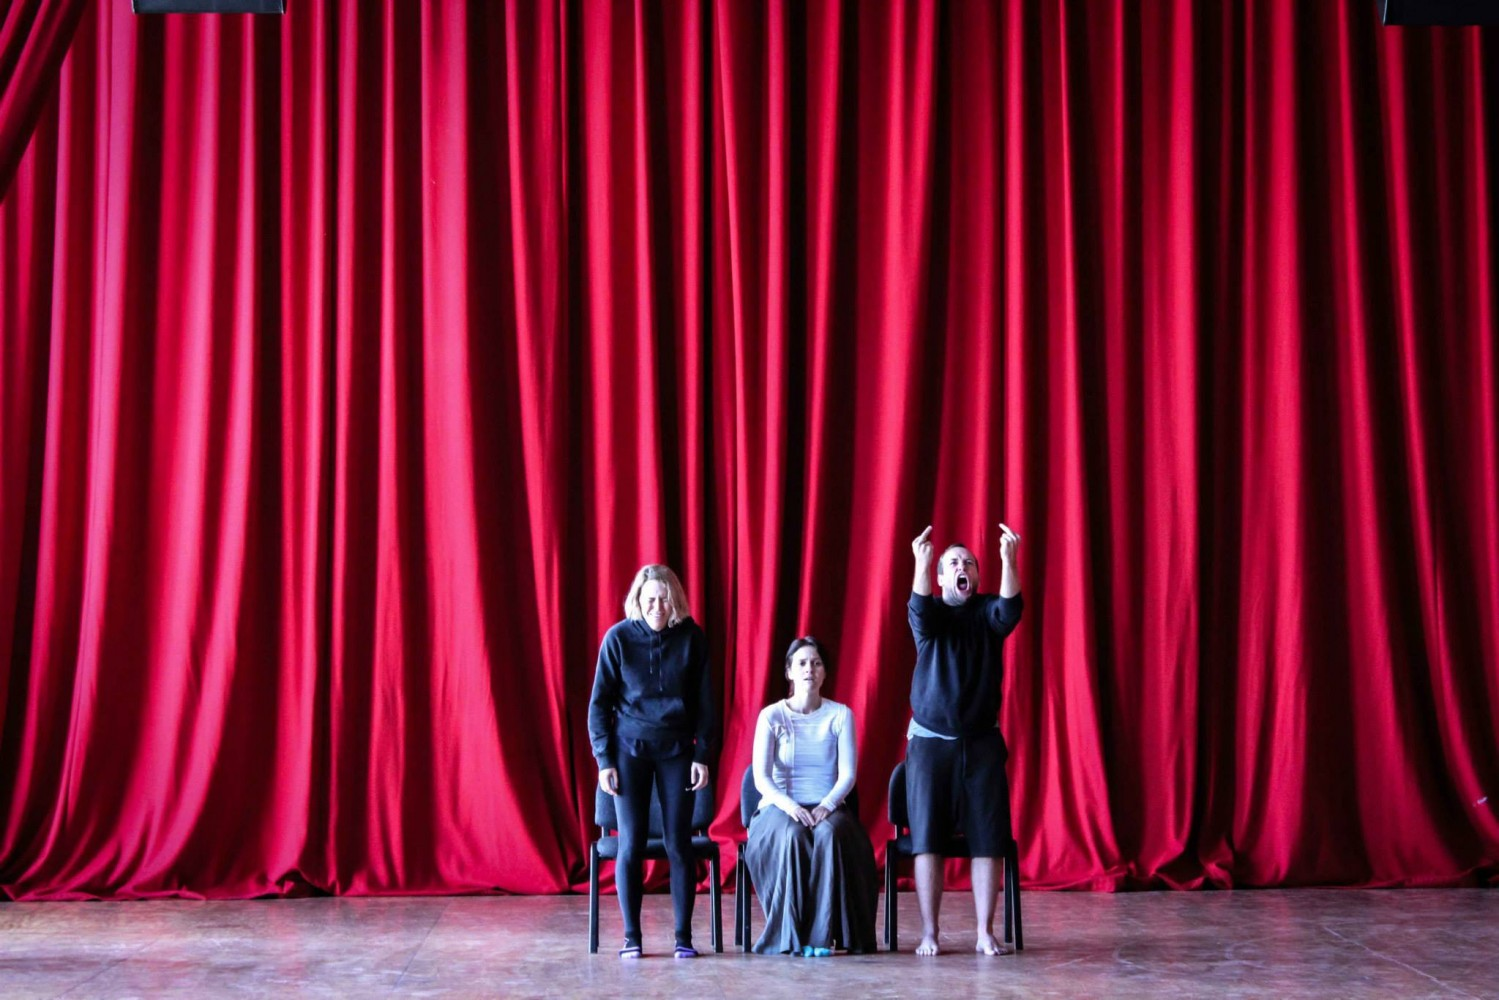 Two standing and one seated performers in a space in front a large red curtain